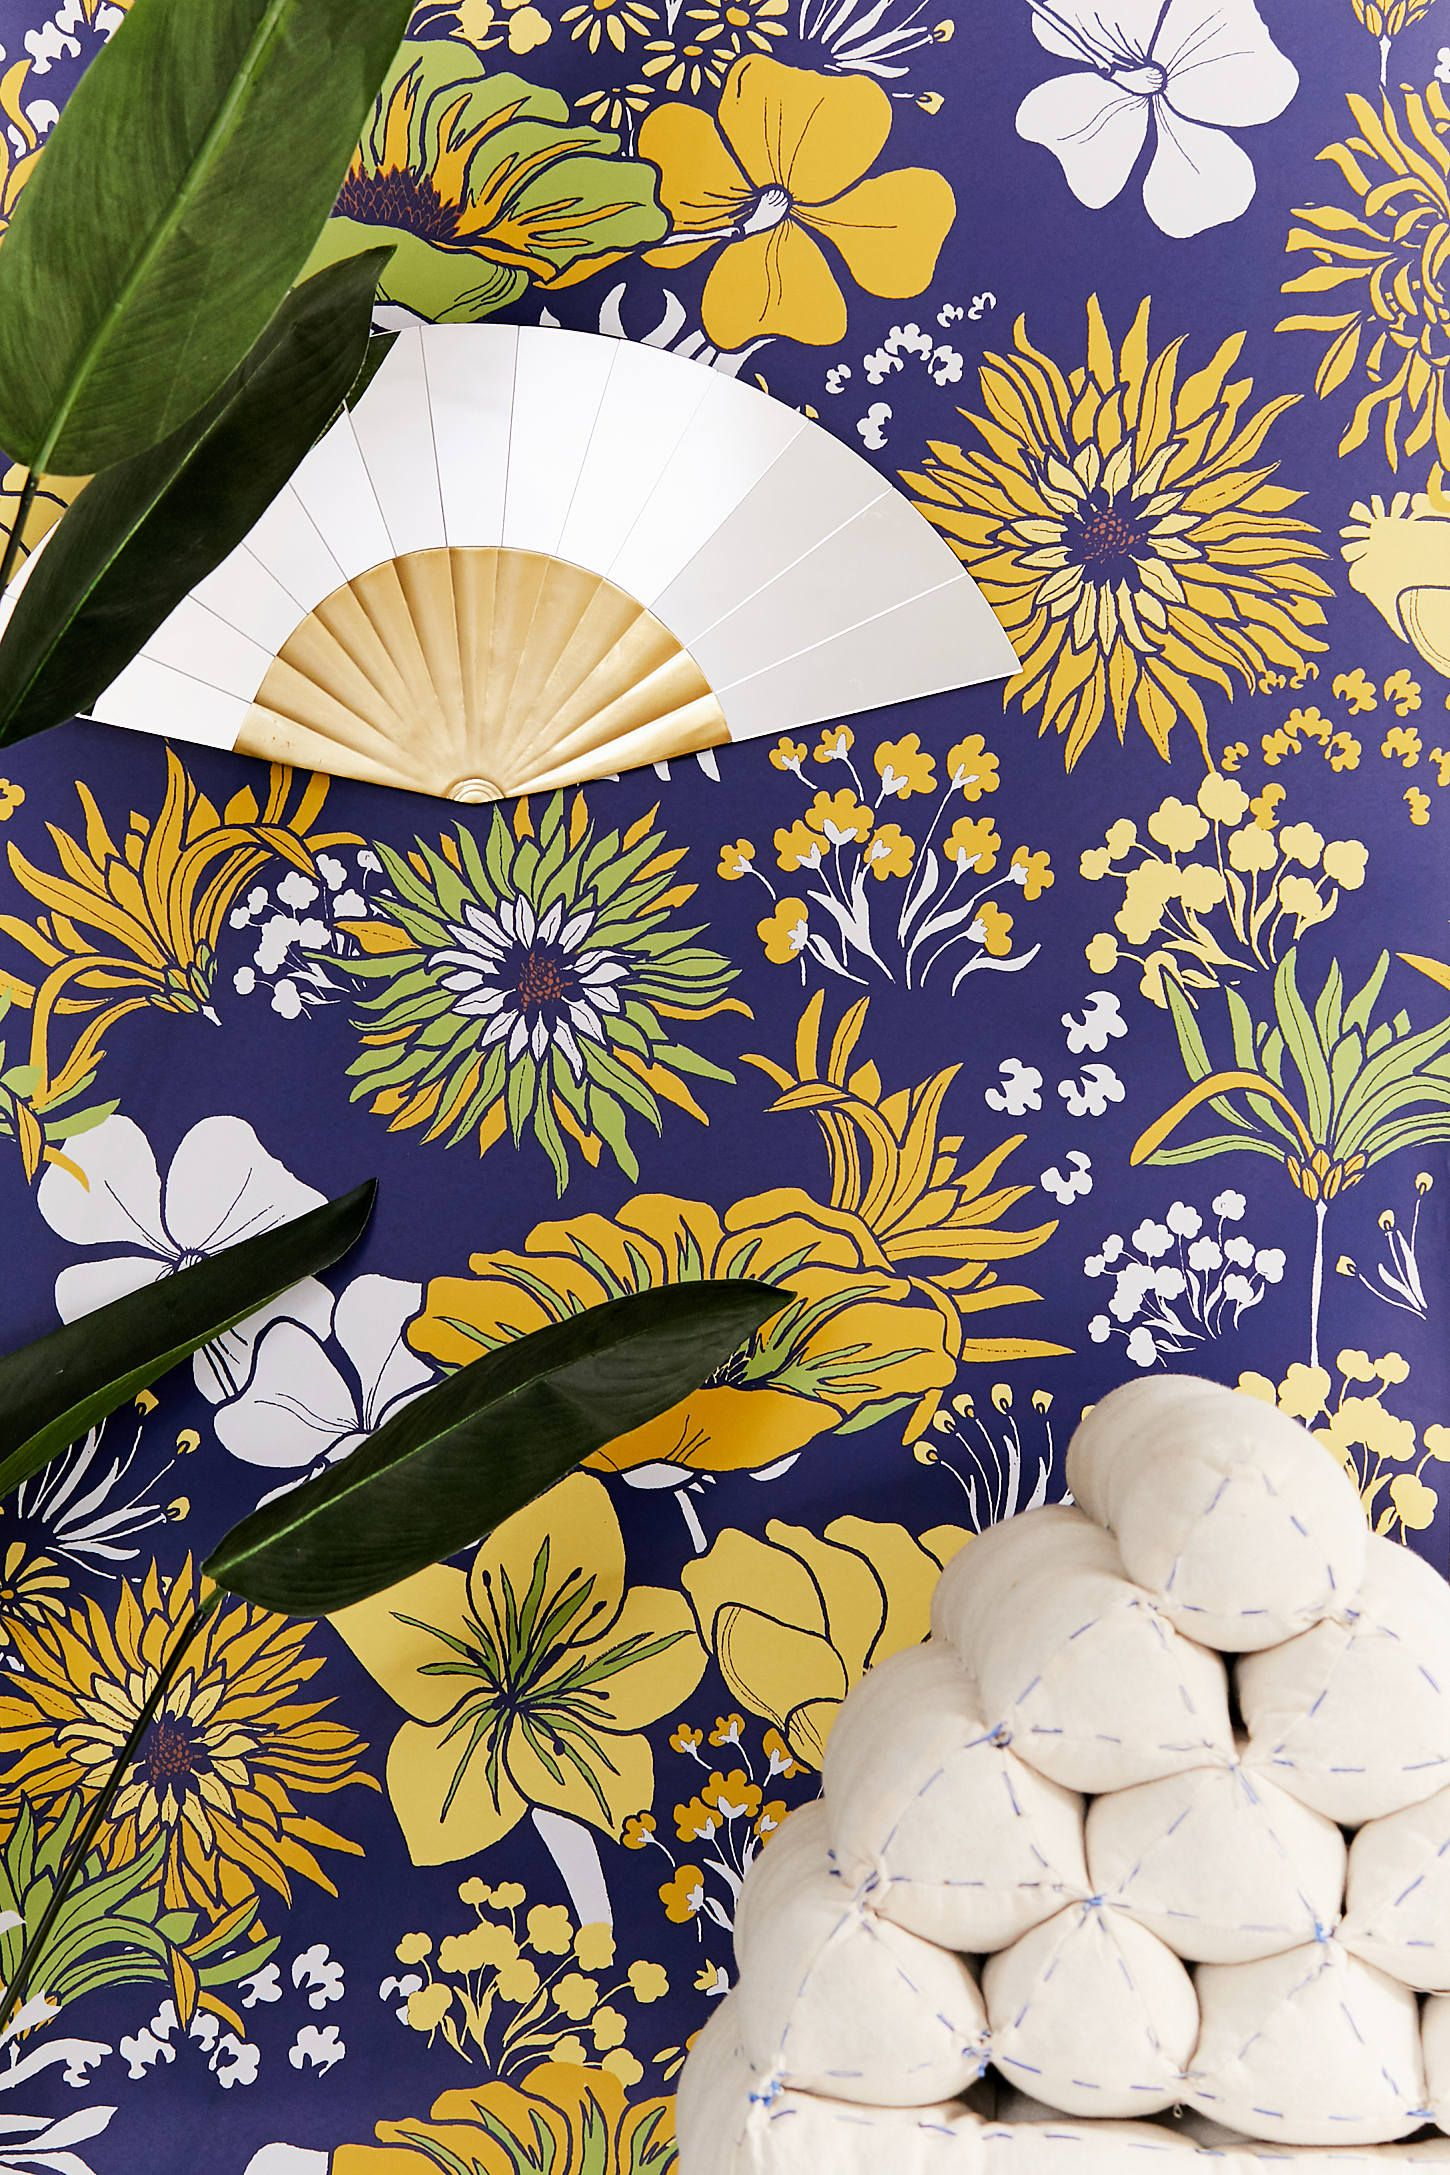 Gail Removable Wallpaper Removable Wallpaper Stick On Wallpaper Urban Outfitters Wallpaper